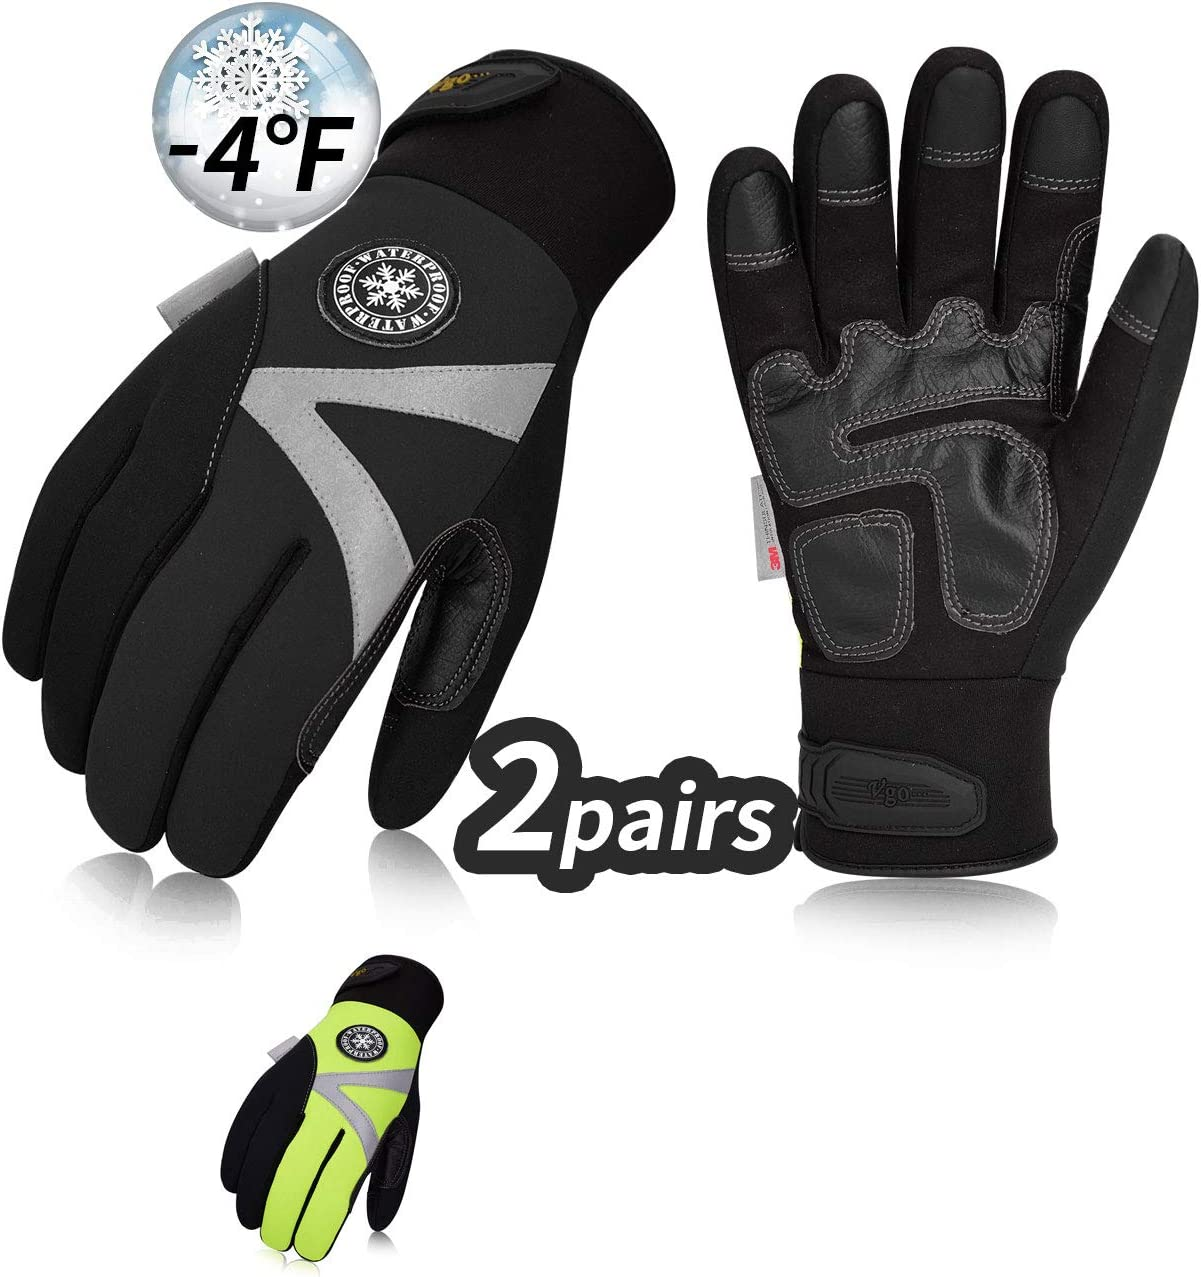 Vgo 2Pairs -4℉ or above 3M Thinsulate C100 Lined High Dexterity Touchscreen Synthetic Leather Winter Warm Work Gloves, Waterproof Insert (Size XS, Black,Fluorescent Green,SL8777FW)